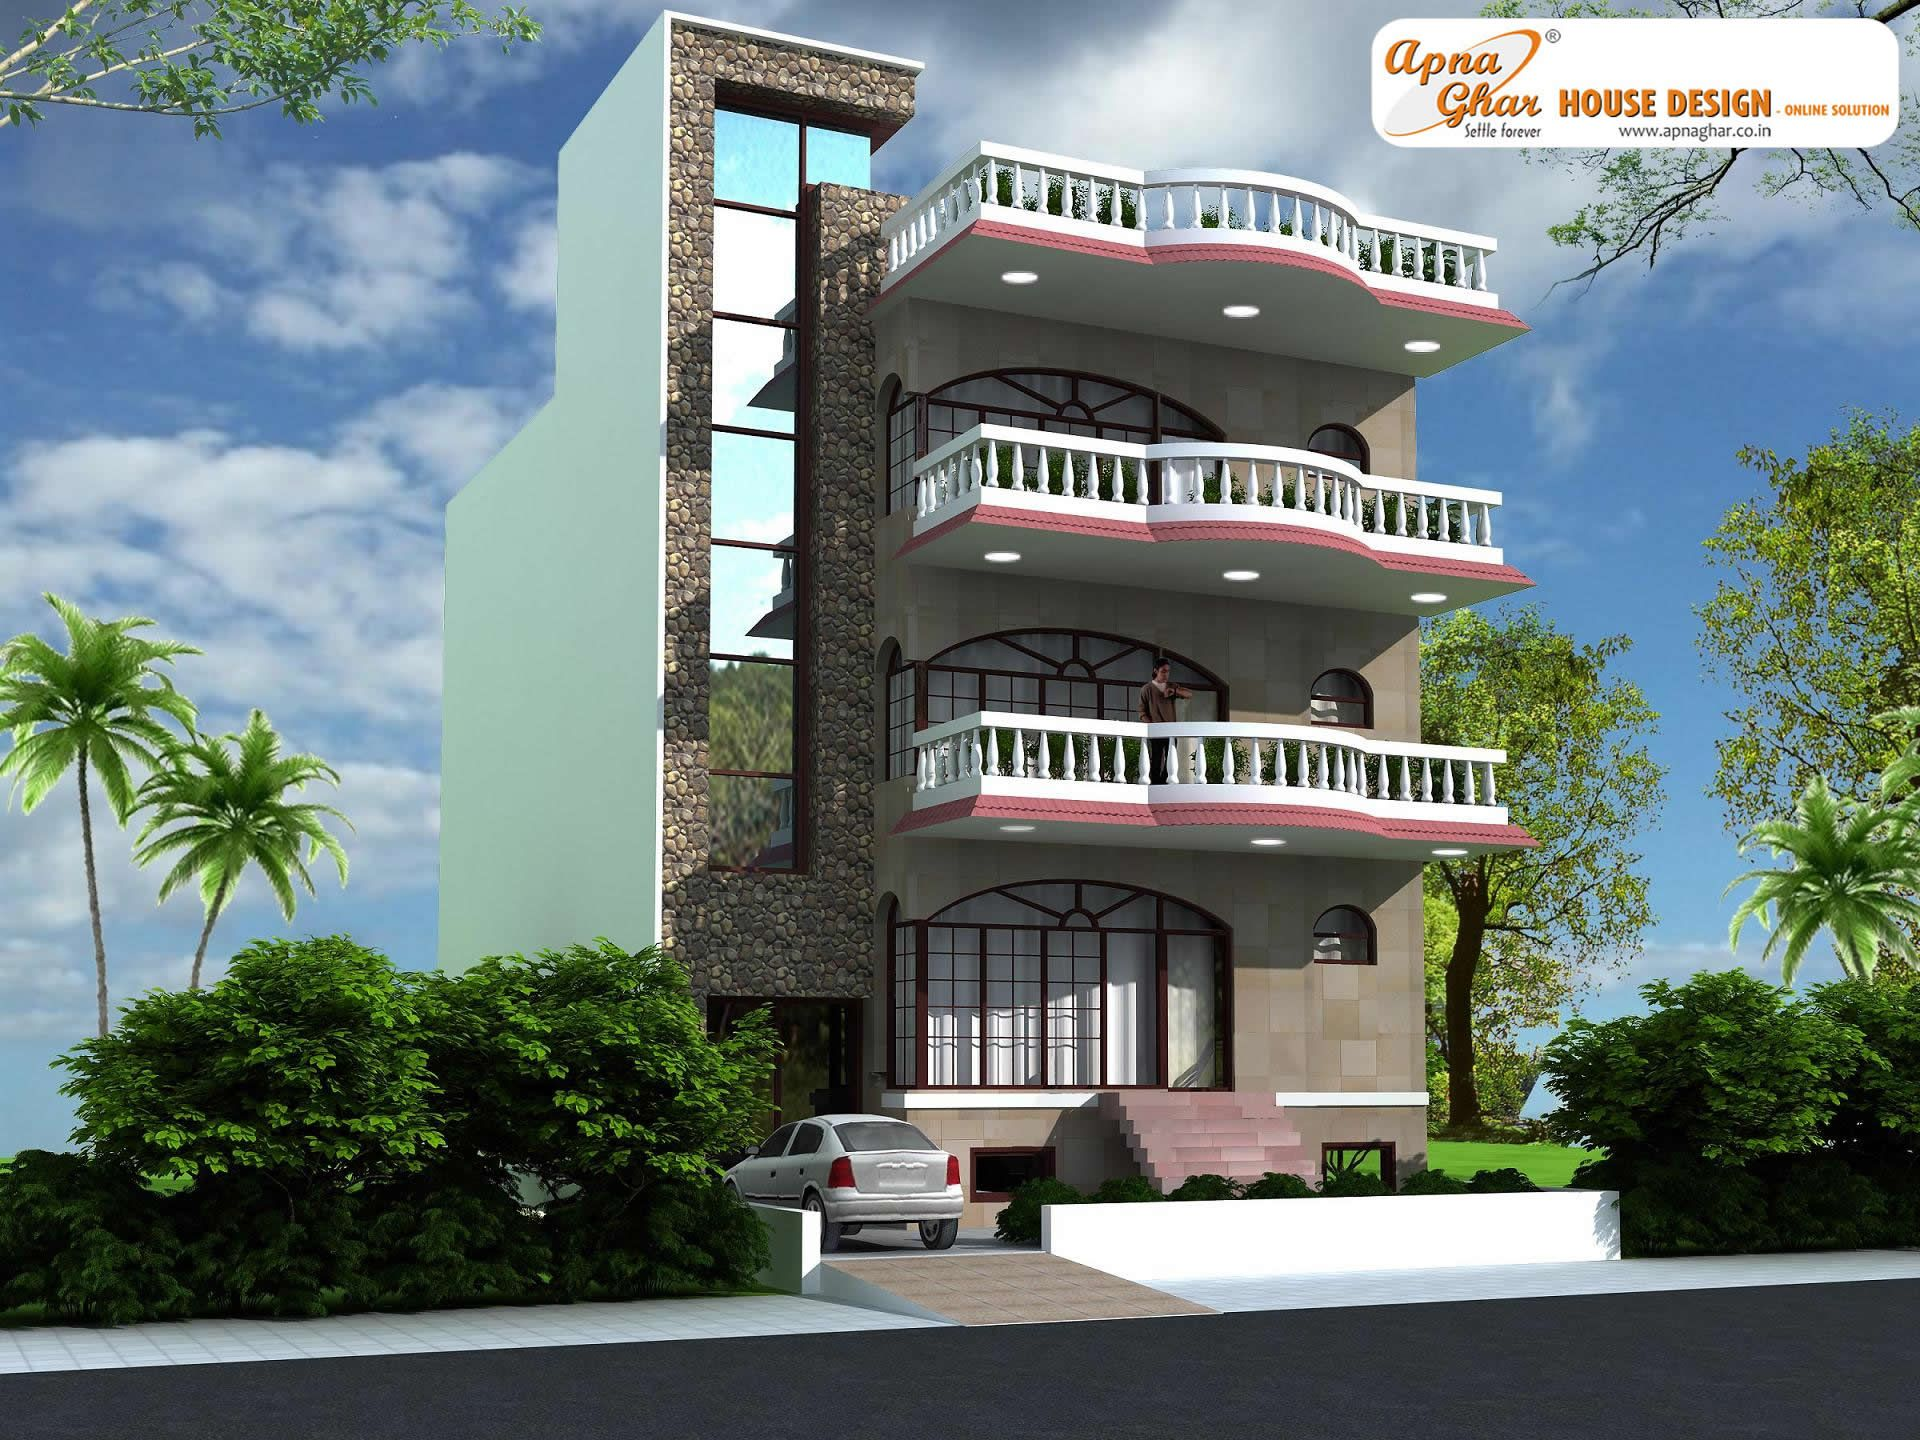 4 bedroom modern triplex 3 floor house design area 162 sq